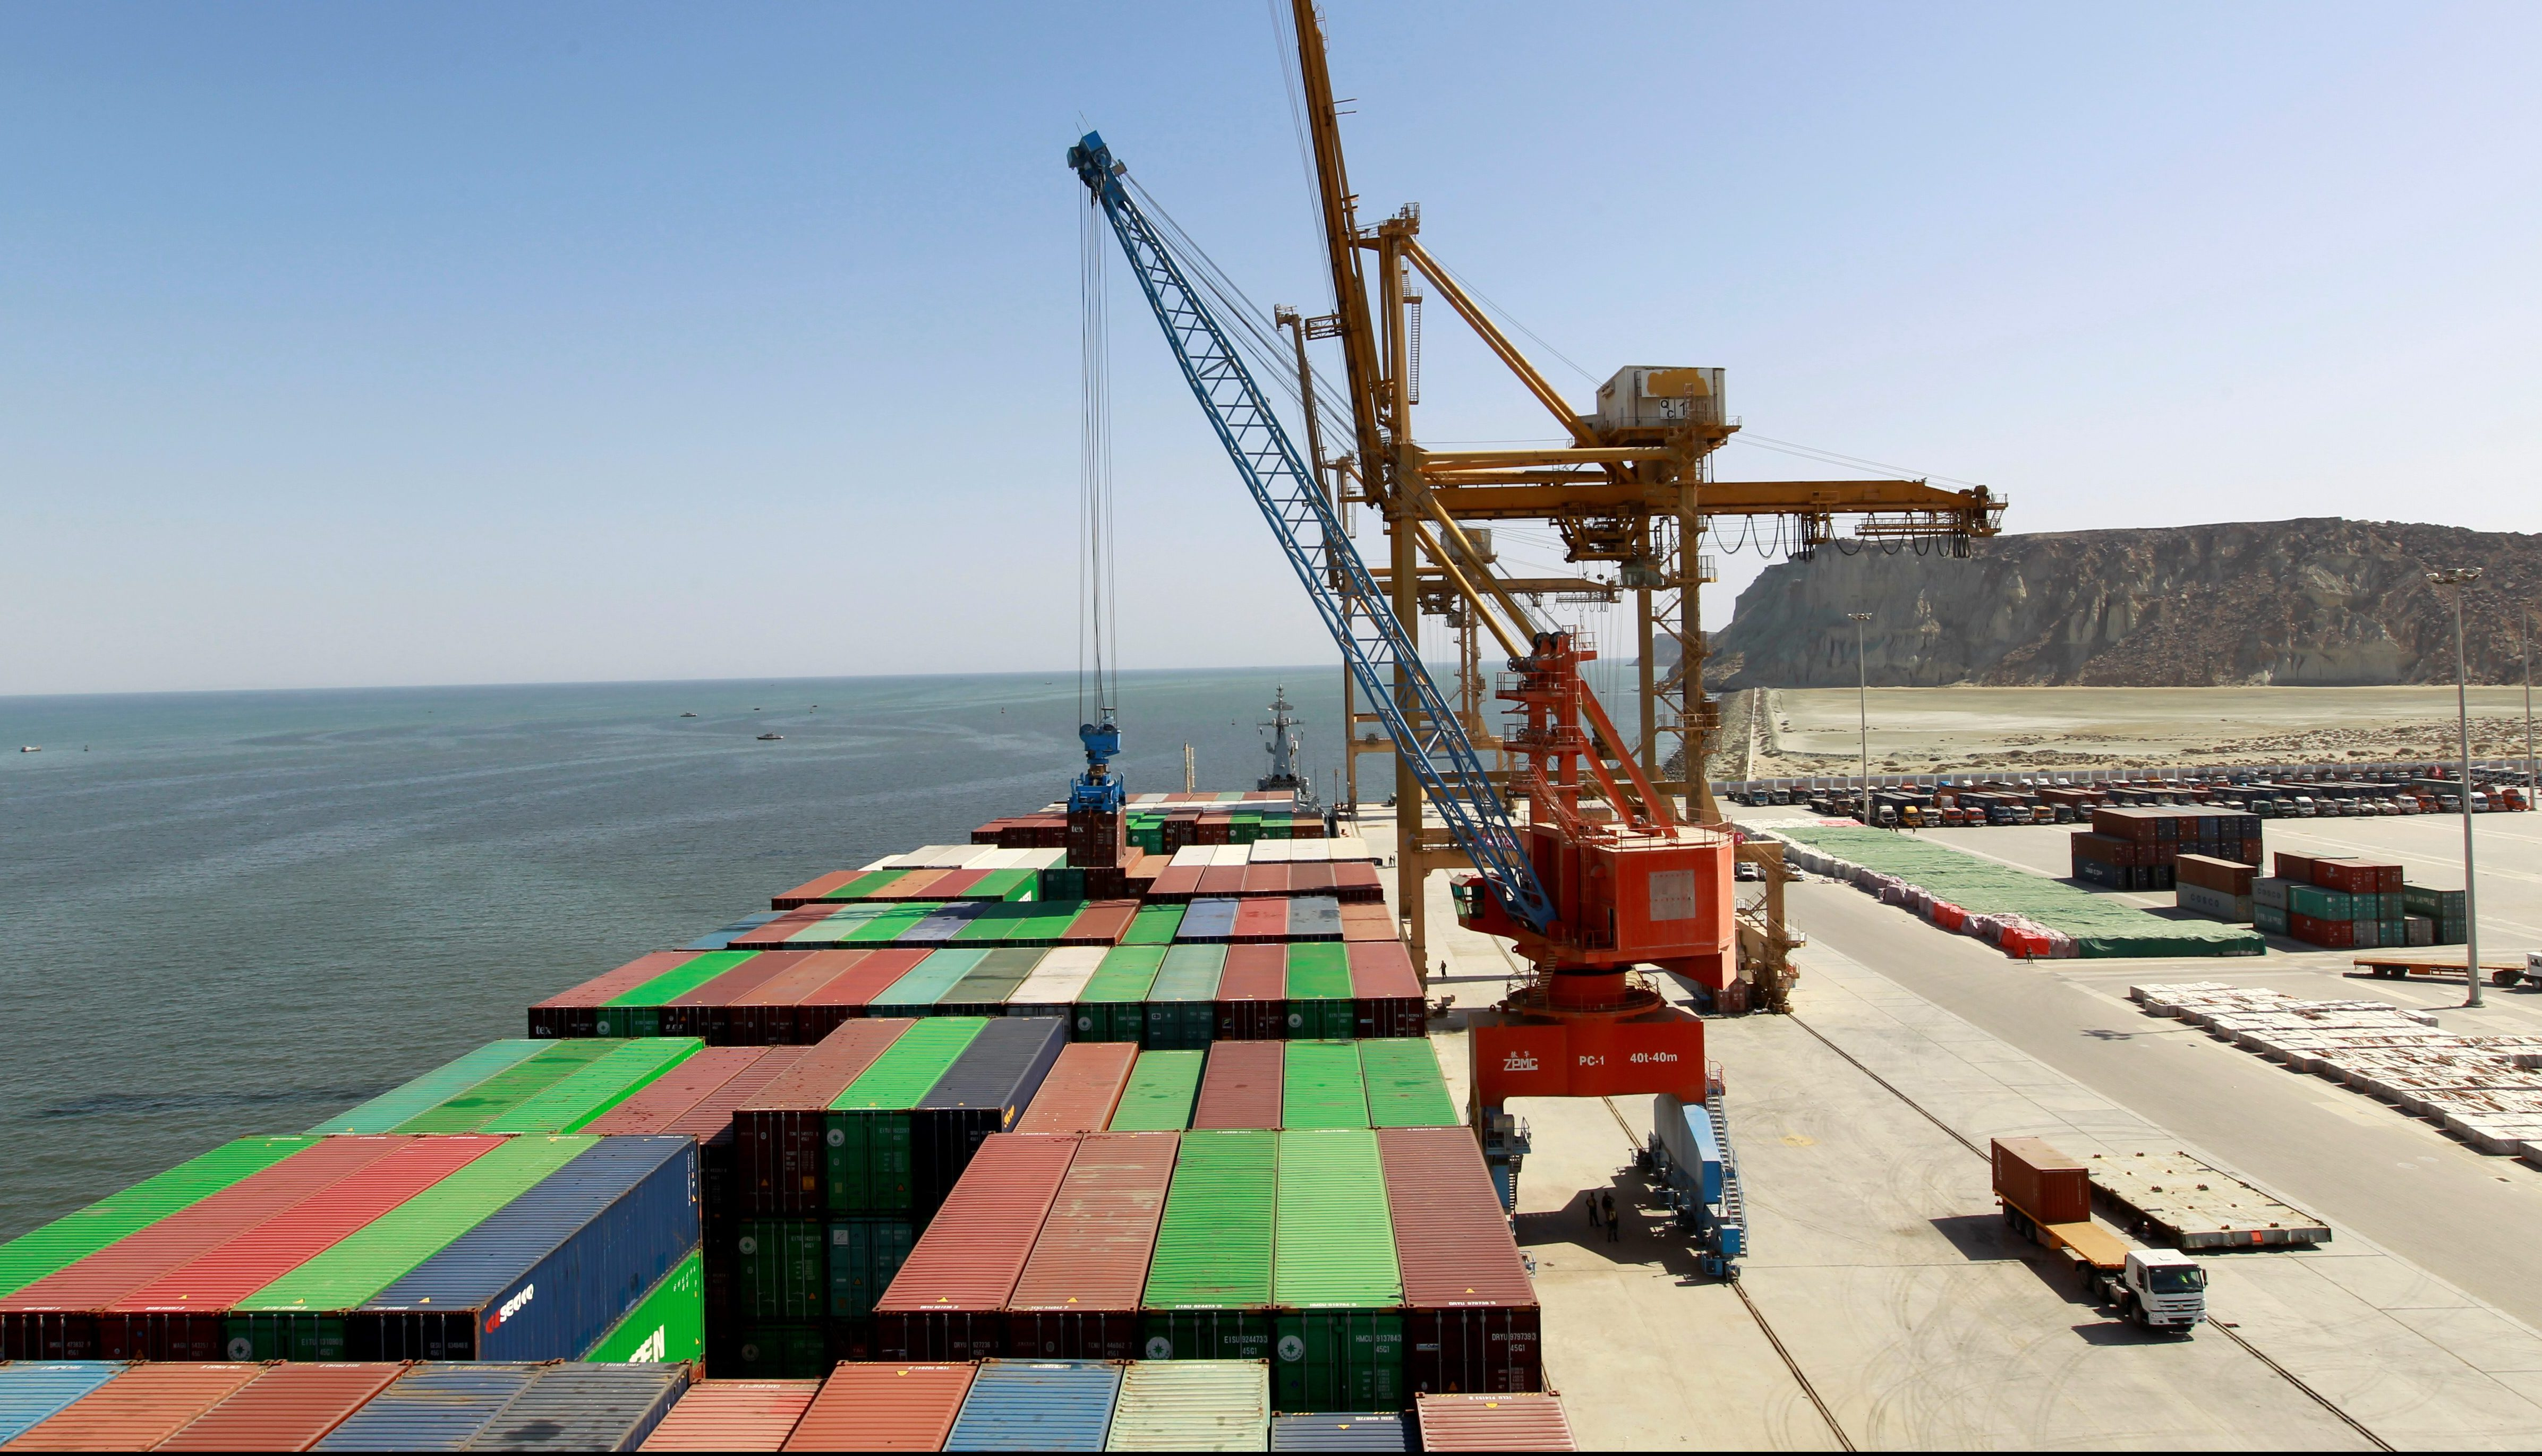 A container is loaded on to the Cosco Wellington, the first container ship to depart after the inauguration of the China Pakistan Economic Corridor port in Gwadar, Pakistan November 13, 2016.